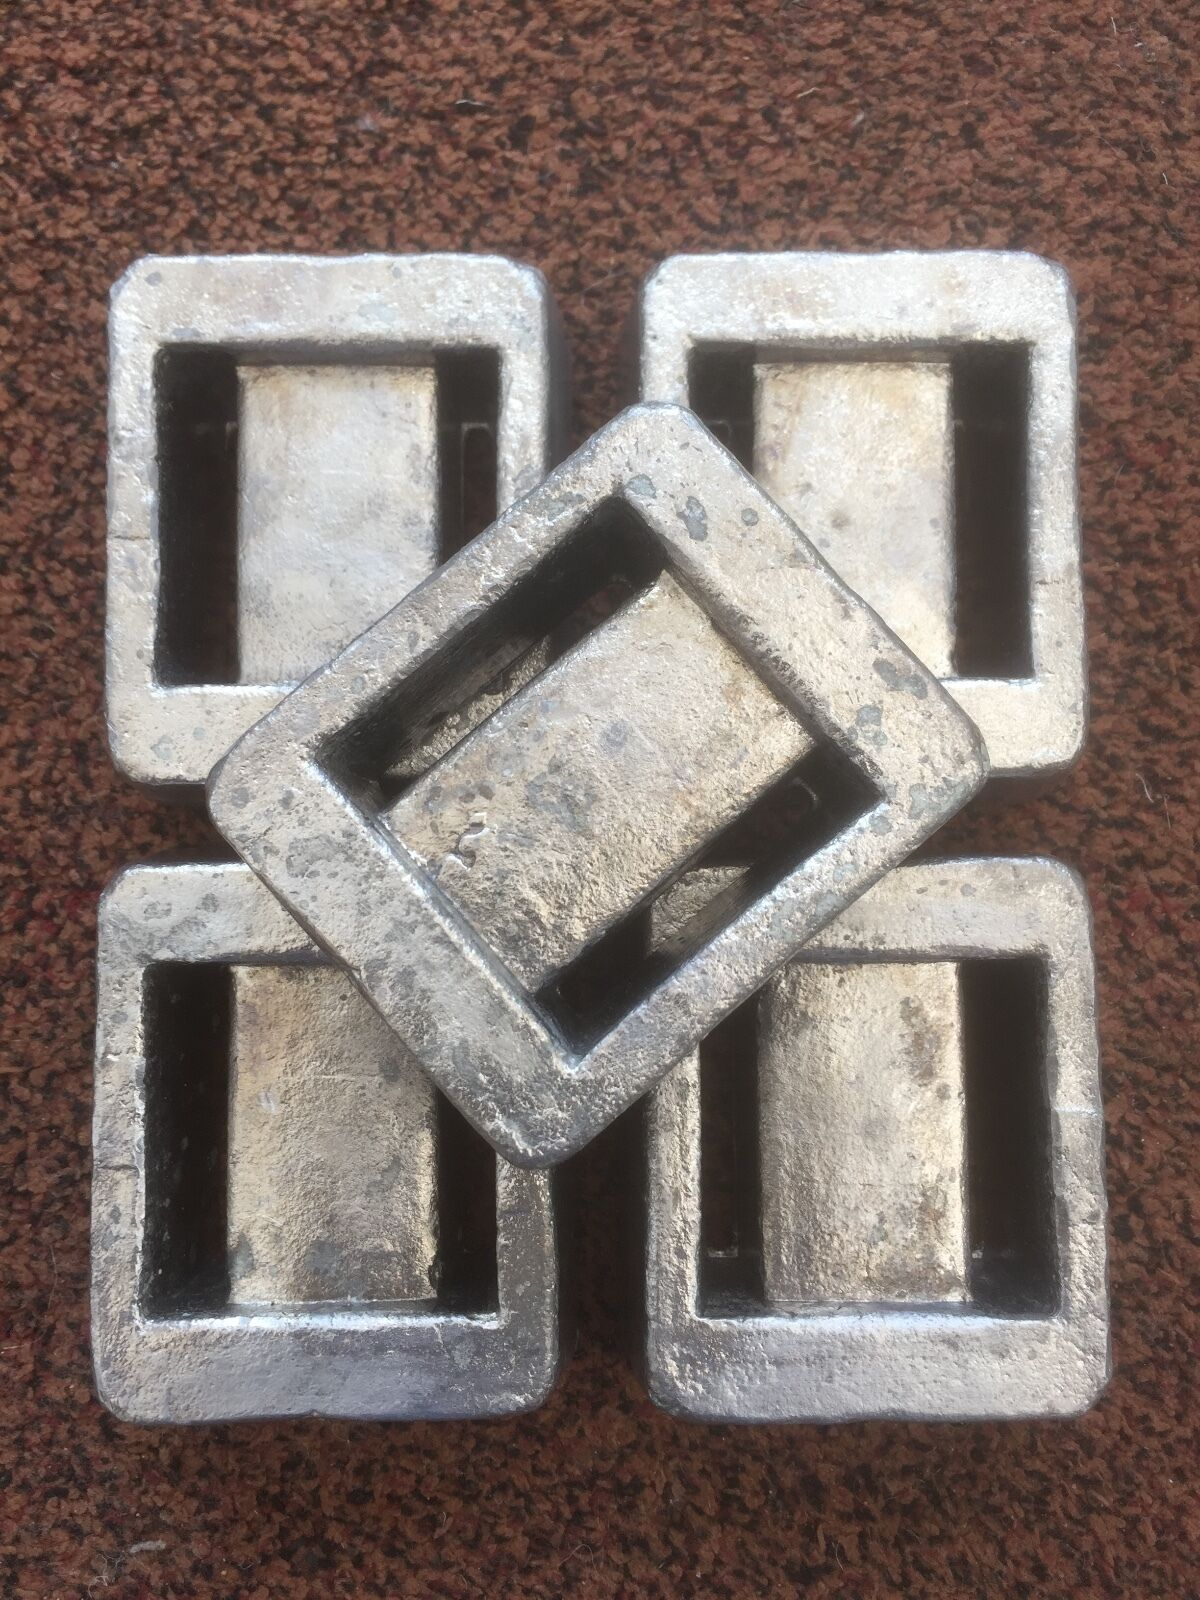 5 x 1kg Solid Lead Scuba Diving Weights = 5kg Total (Free Postage)